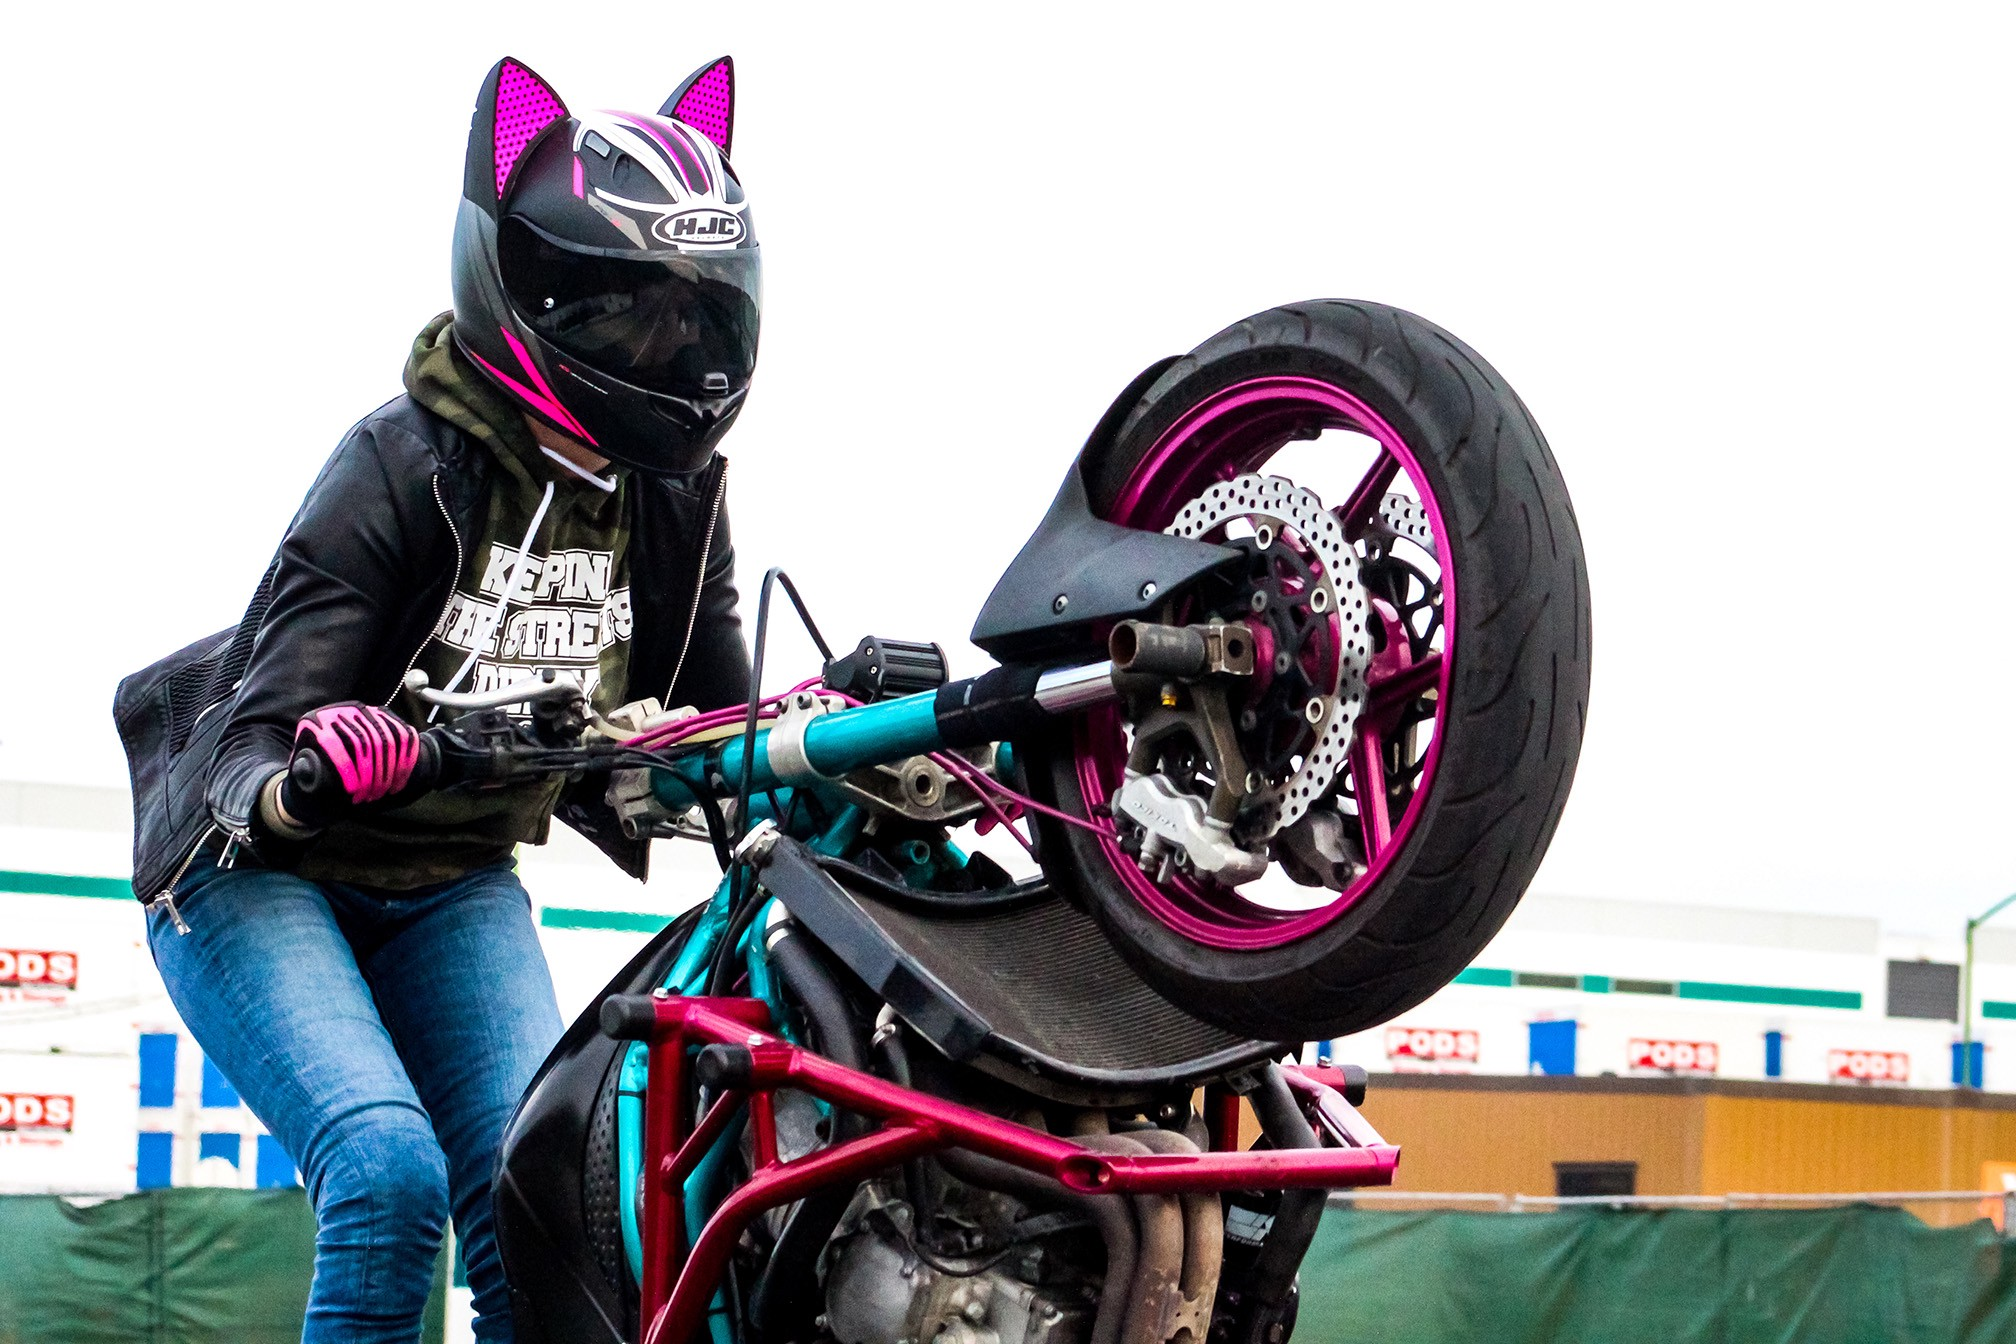 Popping wheelies on Silicon Valley highways: The local stunt